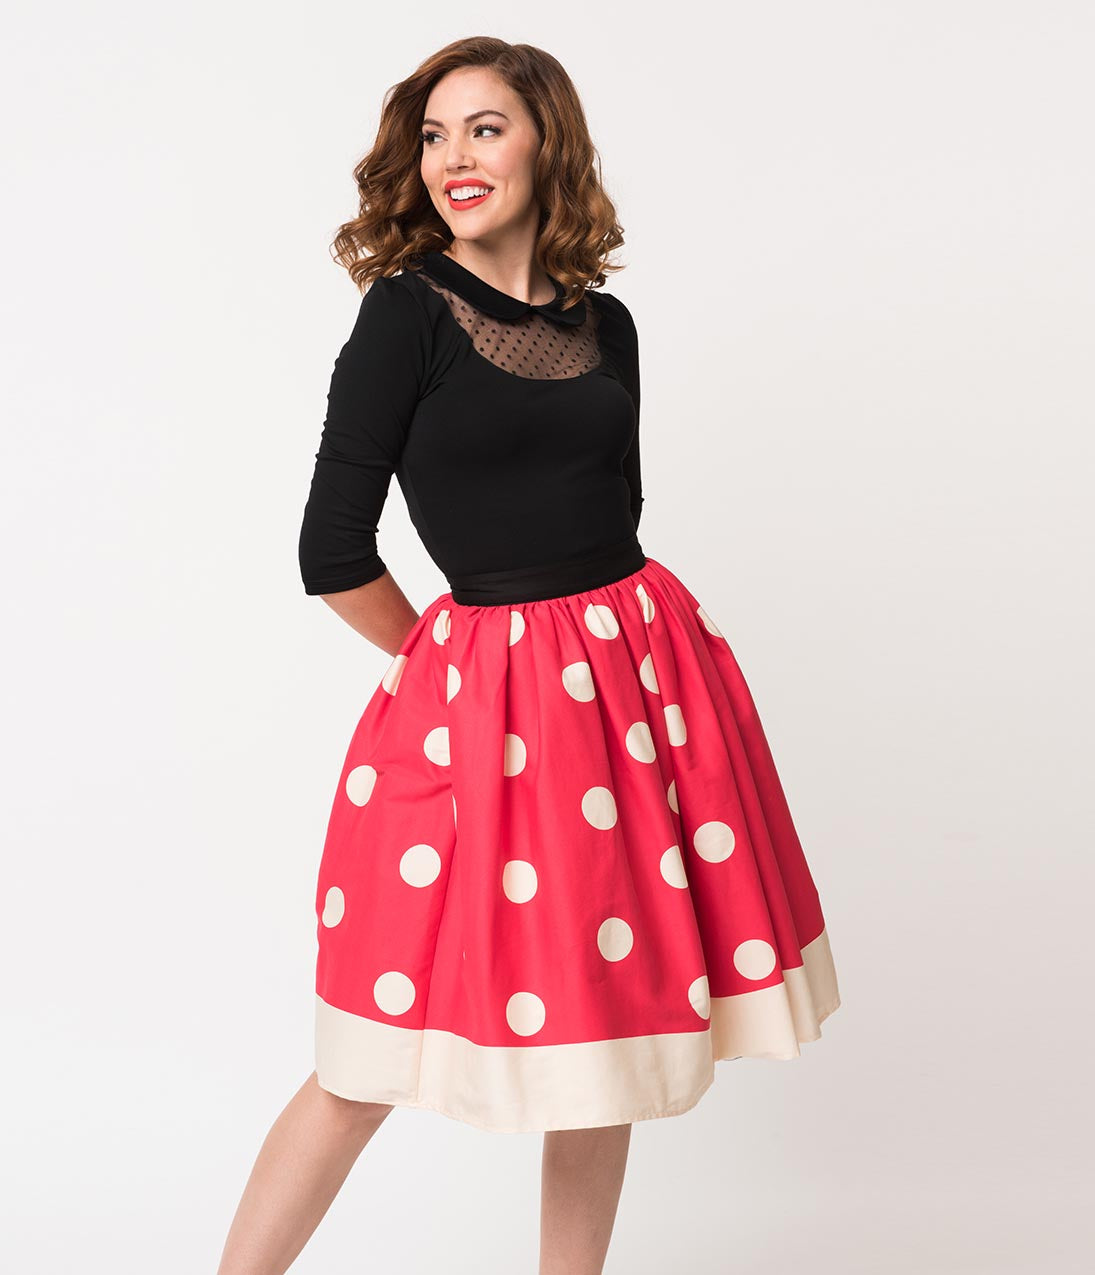 1950s Costumes- Poodle Skirts, Grease, Monroe, Pin Up, I Love Lucy Unique Vintage 1950S Red  Ivory Polka Dot High Waist Circle Swing Skirt $54.00 AT vintagedancer.com